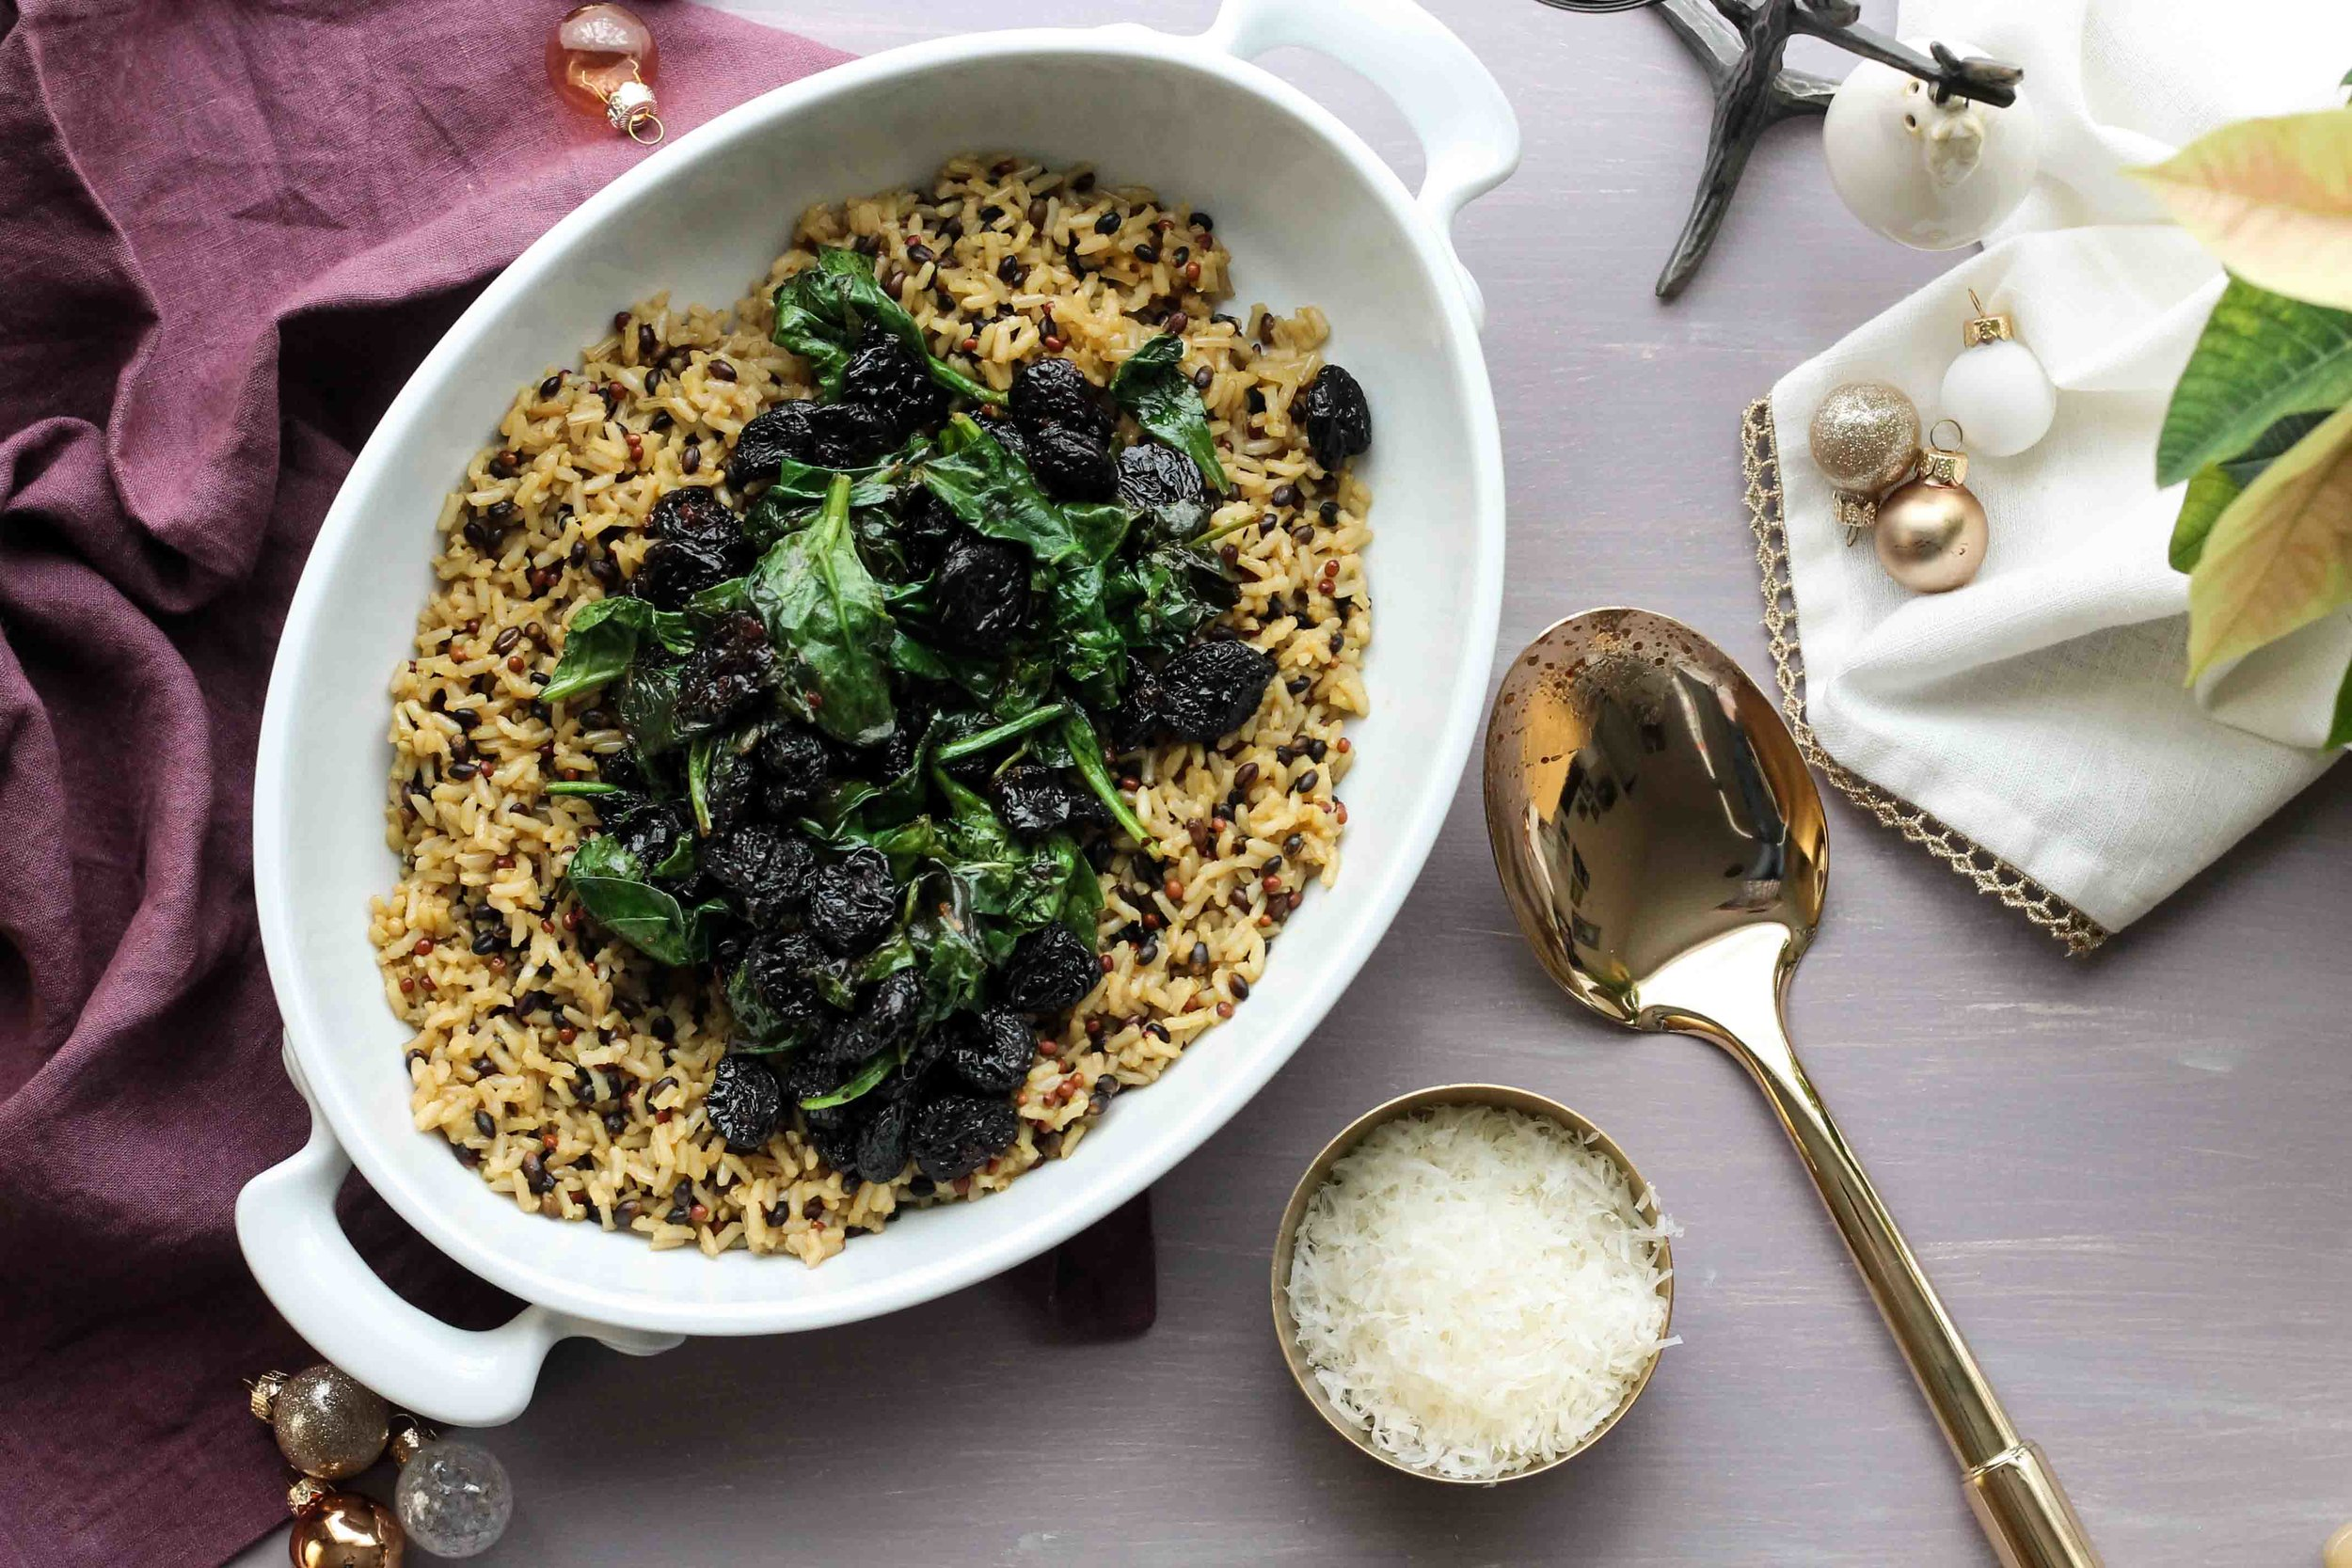 Ordinary wild rice becomes a fantastic, holiday stuffing when paired with plumped, dried cherries, spinach, truffle oil, and lots of parmesan. [pedanticfoodie.com]